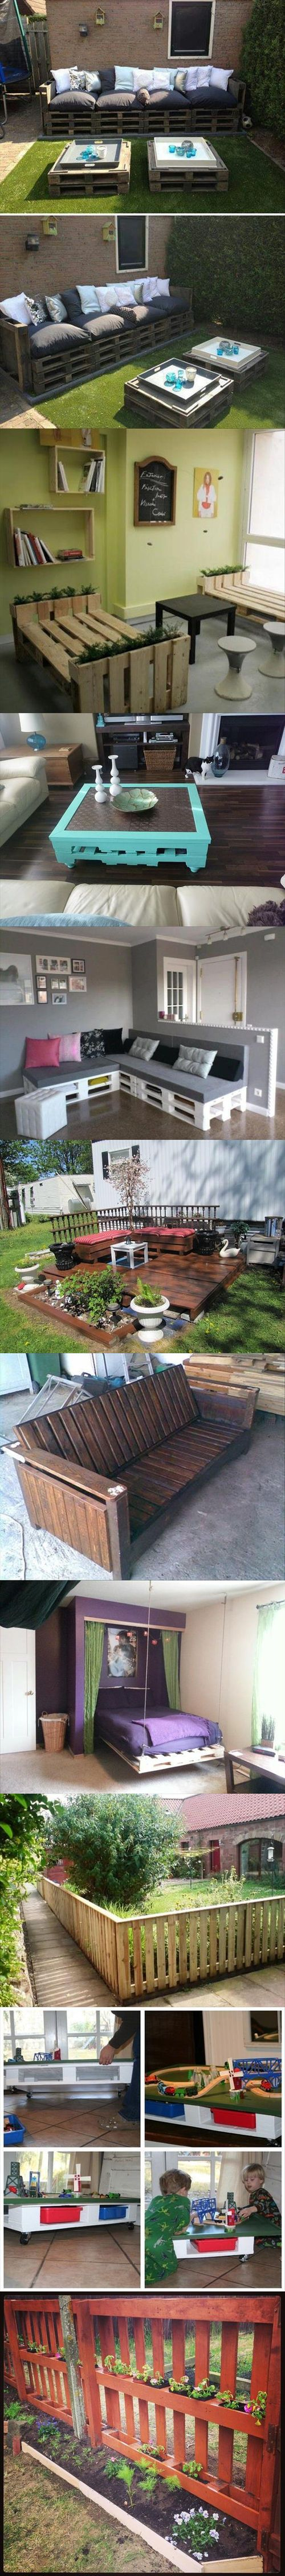 #PALLETS: Amazing Uses For Old Pallets - DIY Projects - http://dunway.info/pallets/index.html